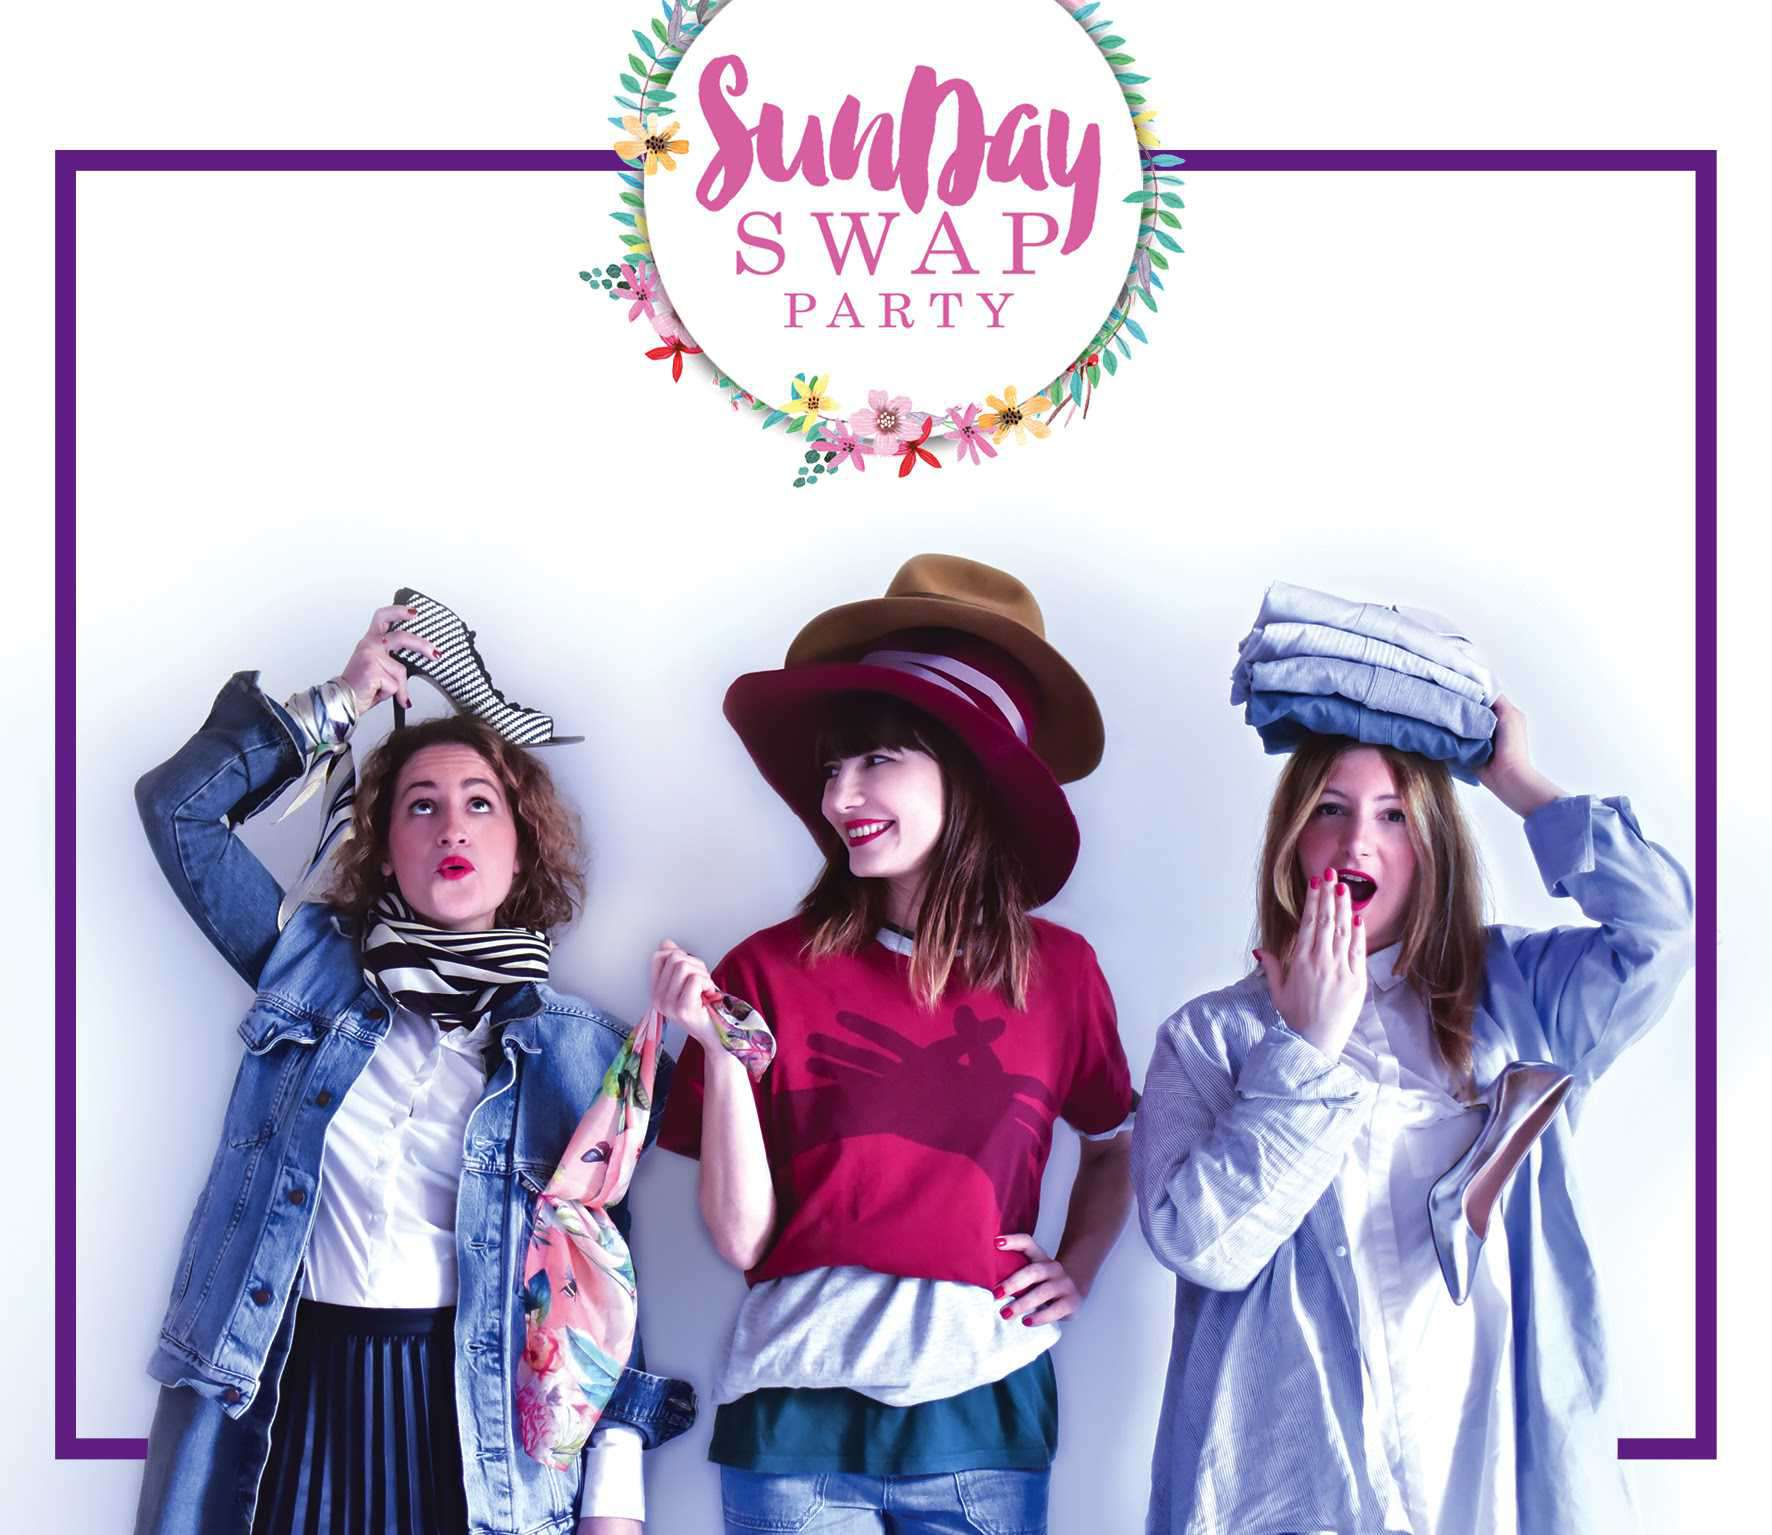 SUNDAY SWAP PARTY